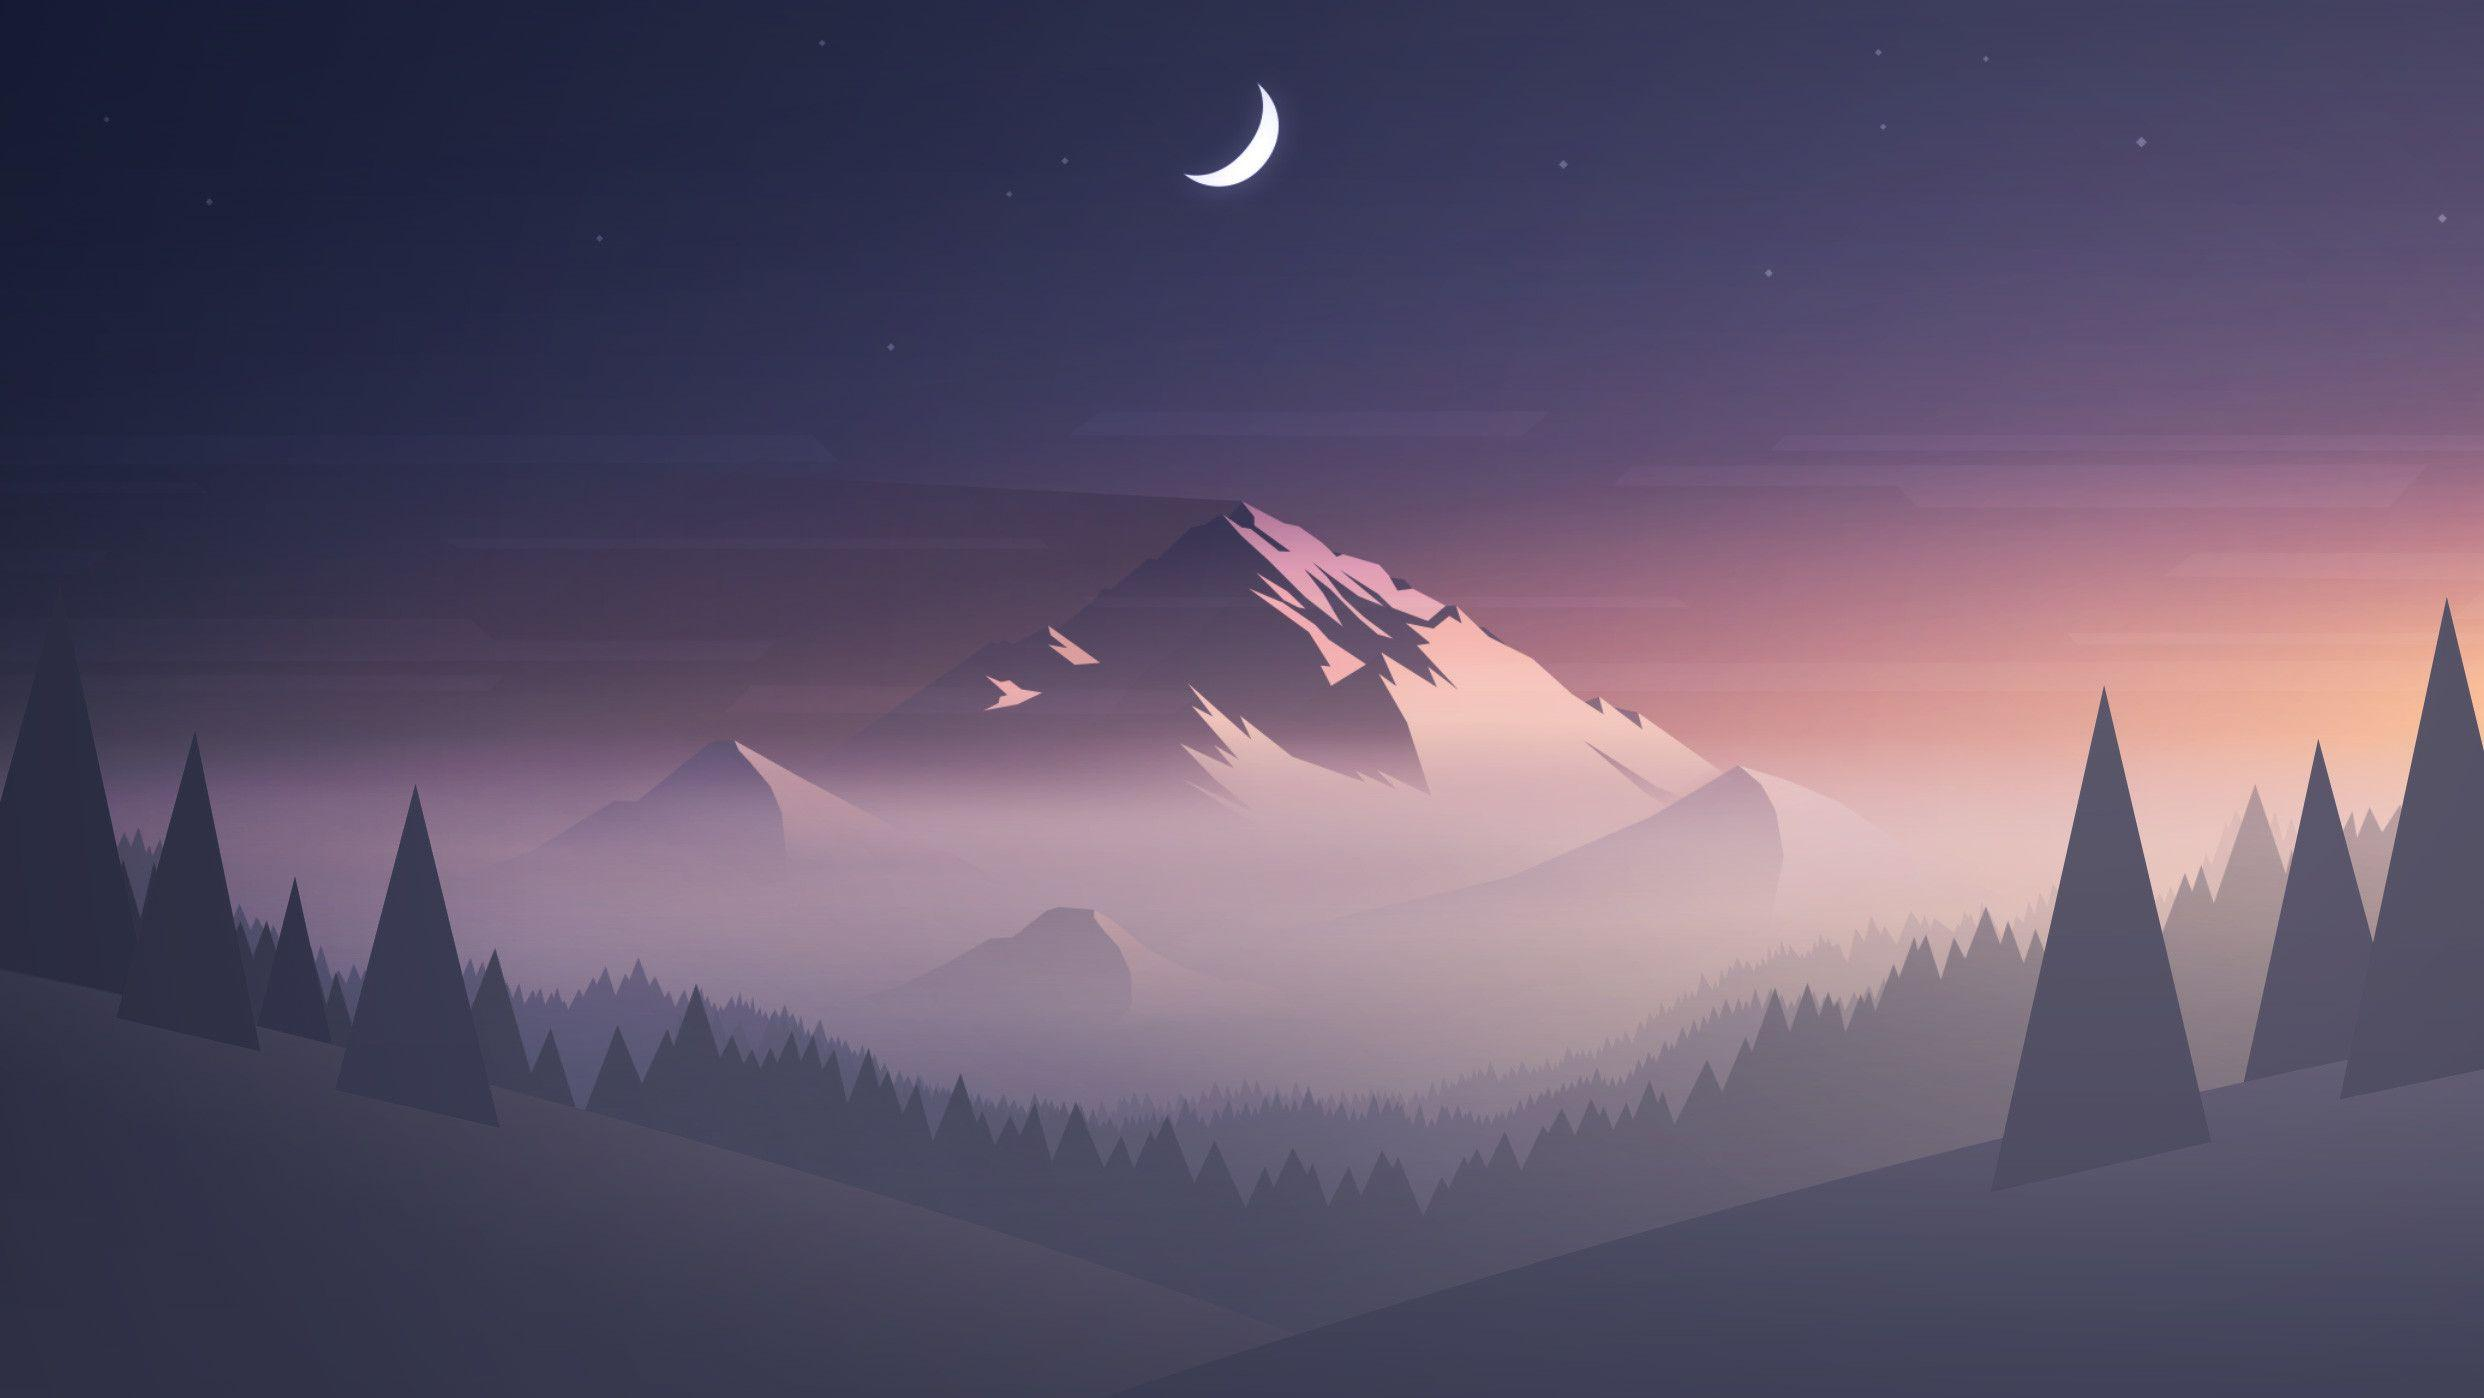 Minimalist Mountain Wallpapers   Wallpaper Cave